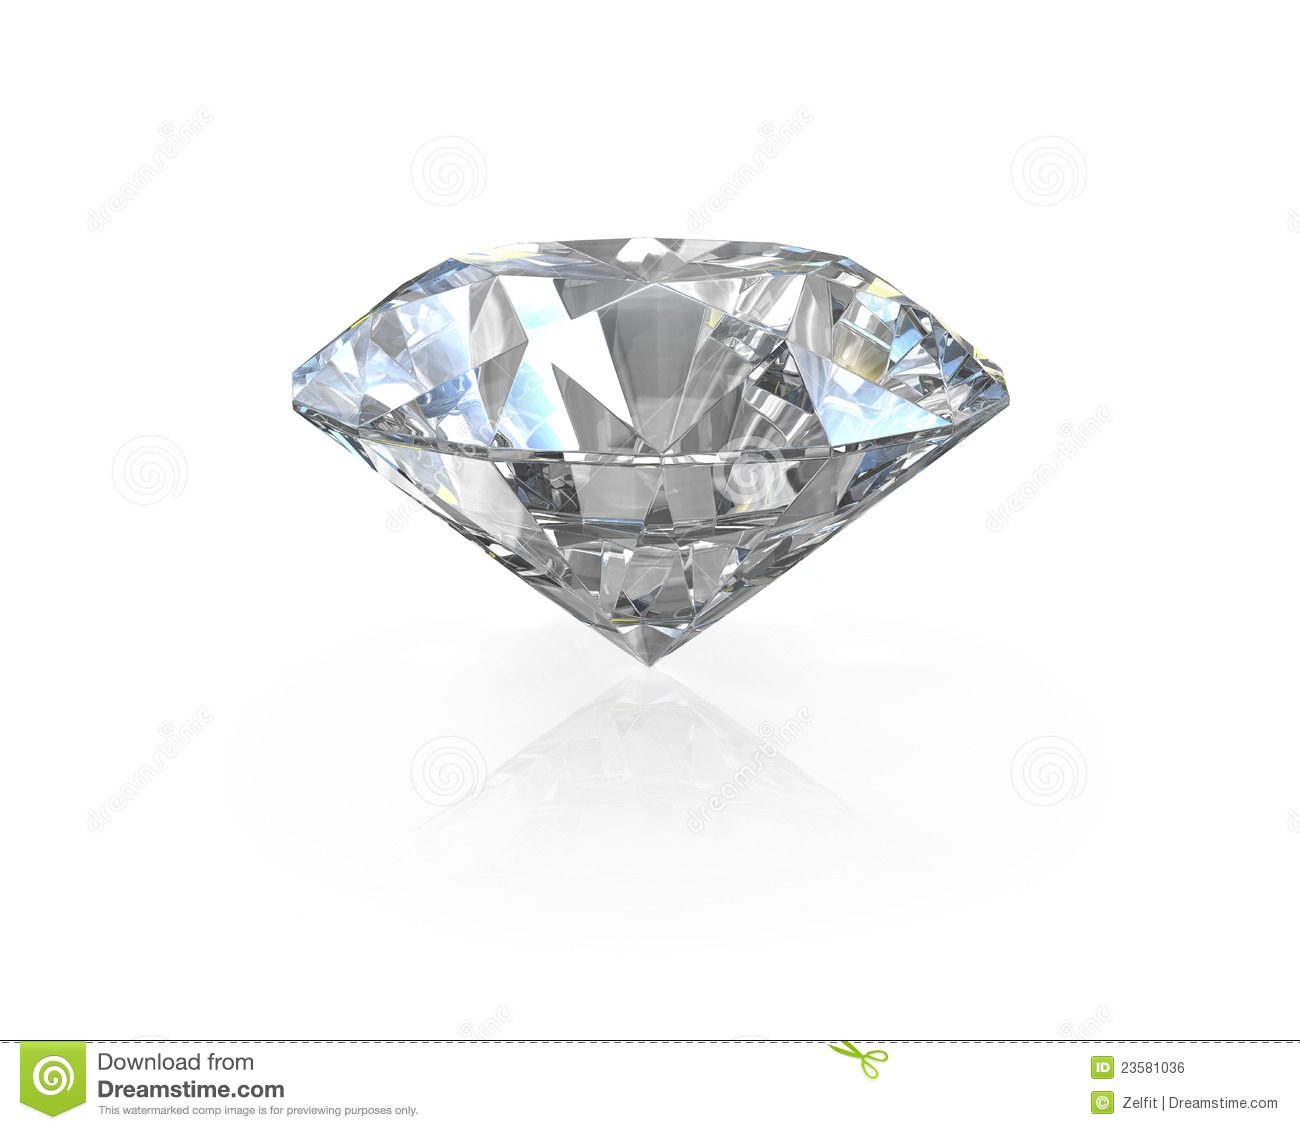 Round Old European Cut Diamond Royalty Free Stock Image